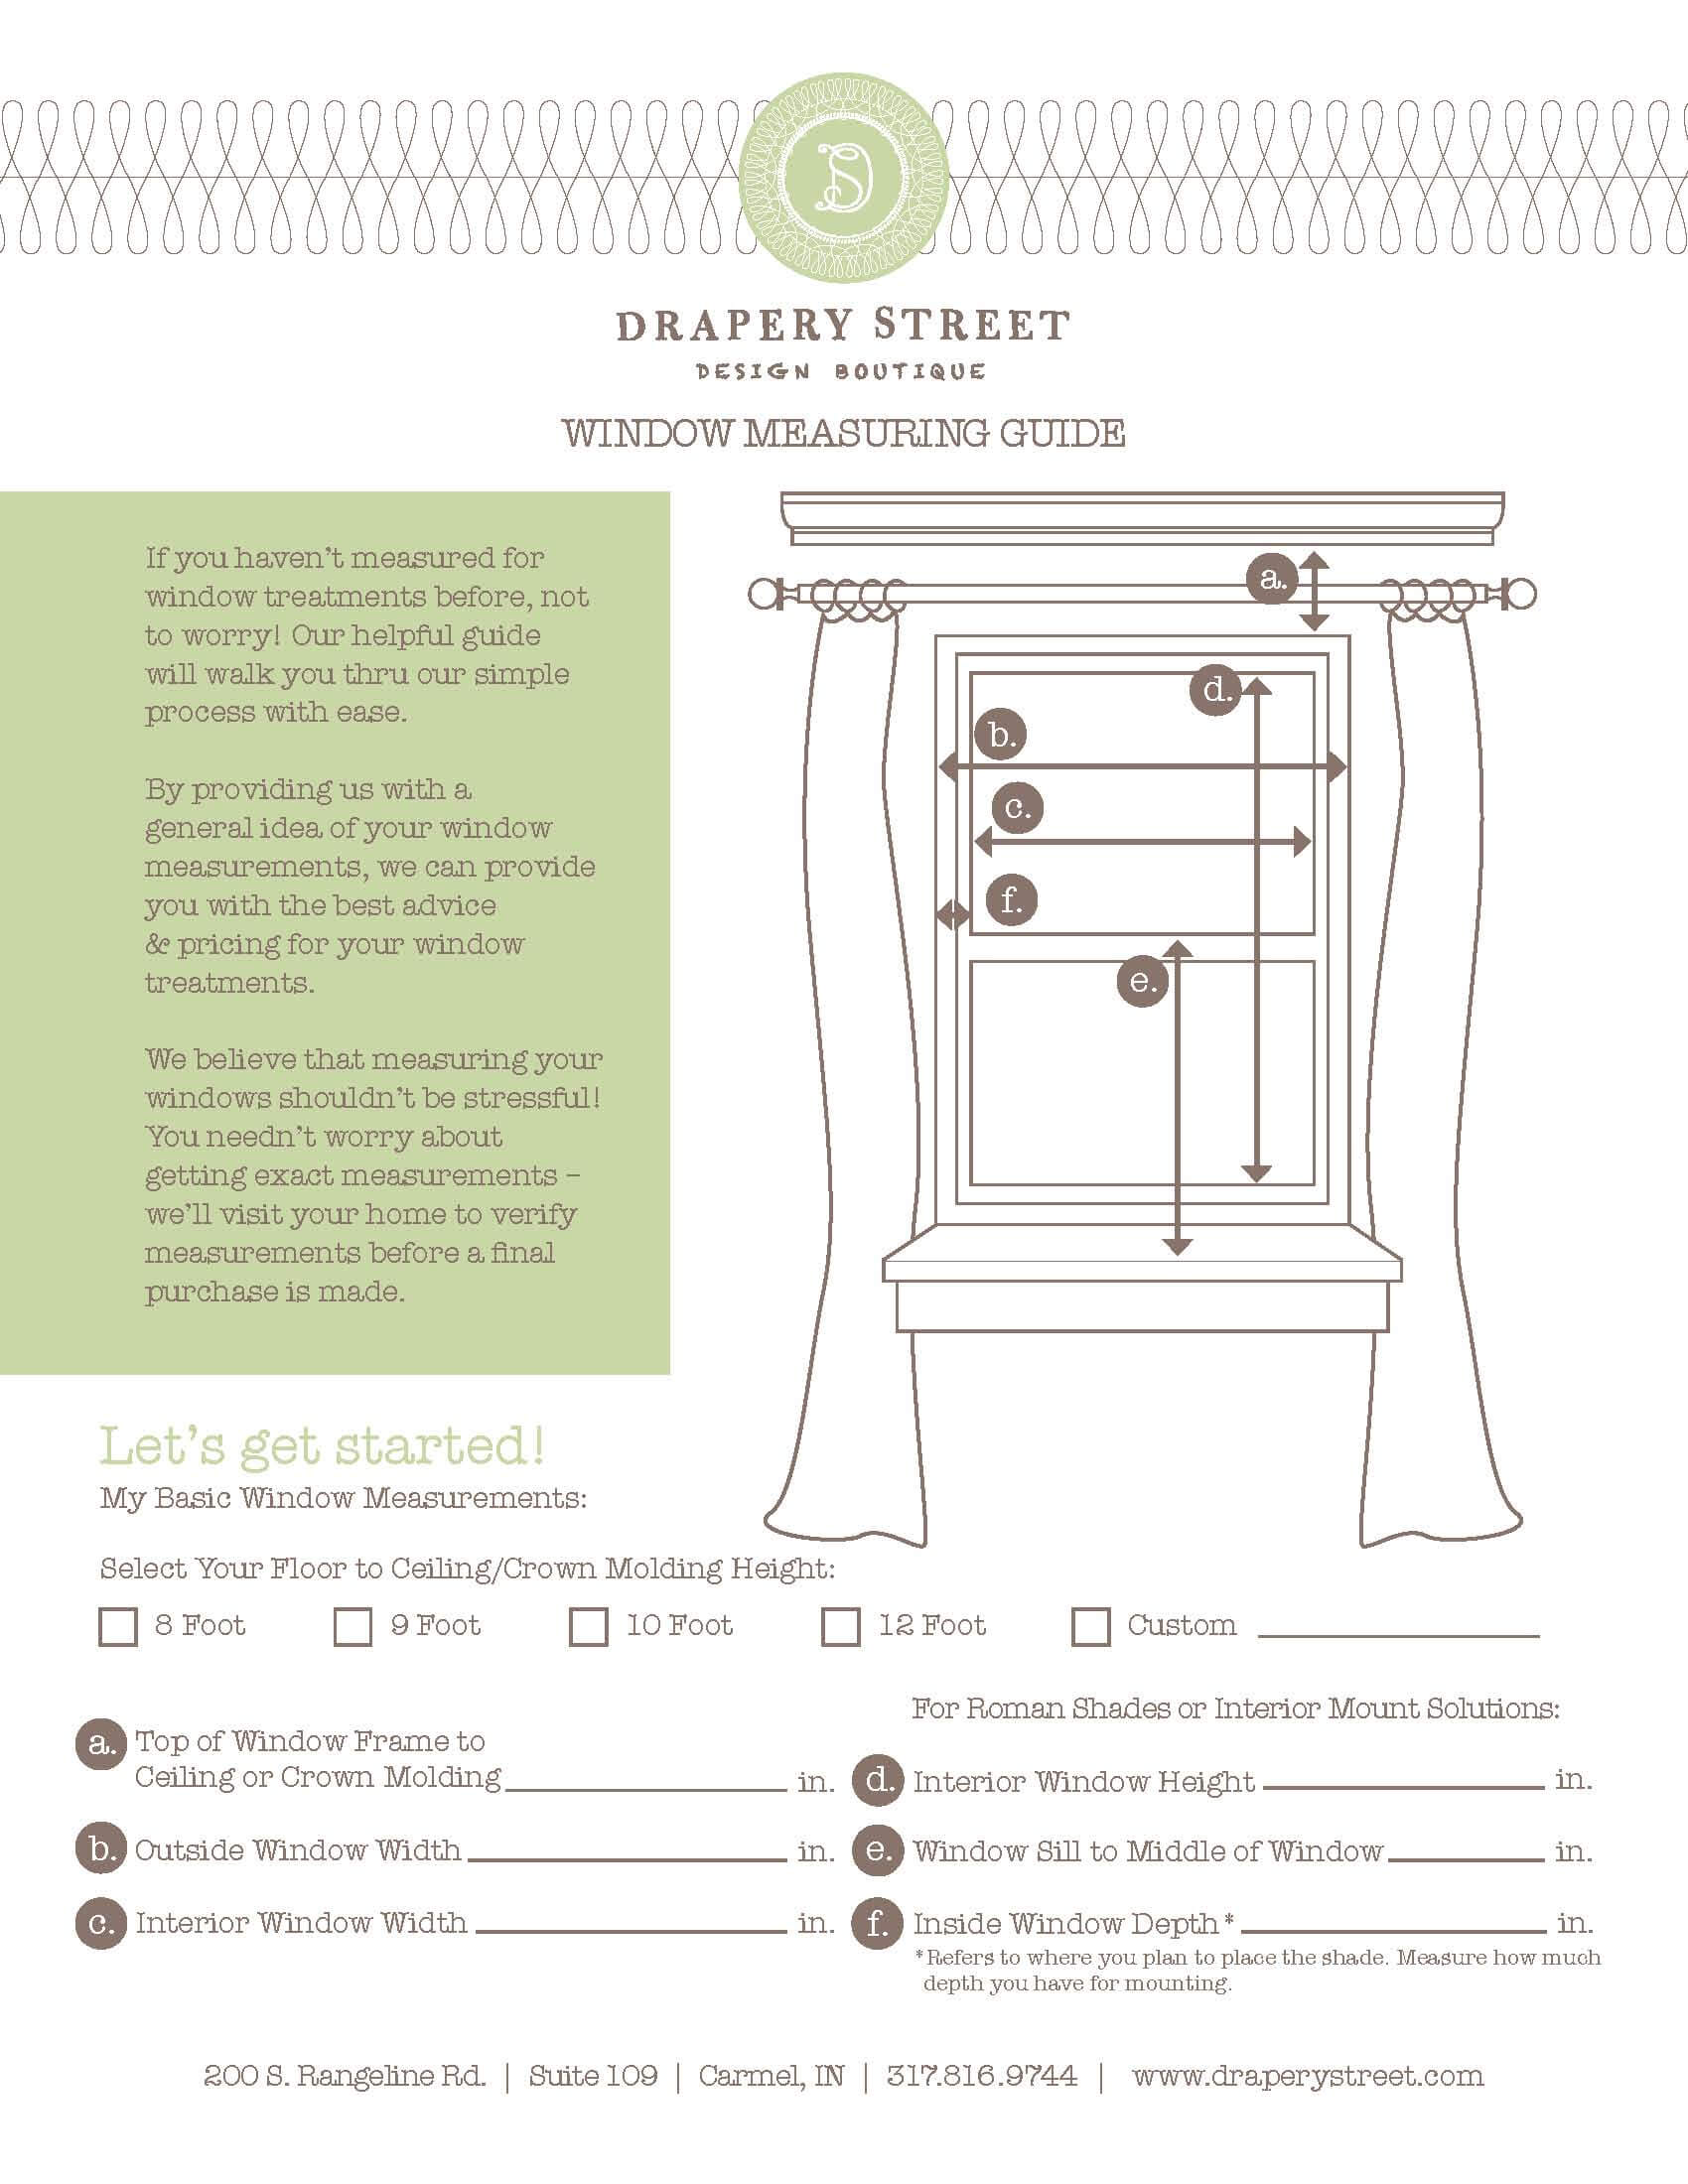 How To Measure Windows For Drapes And Window Treatments Drapery Street